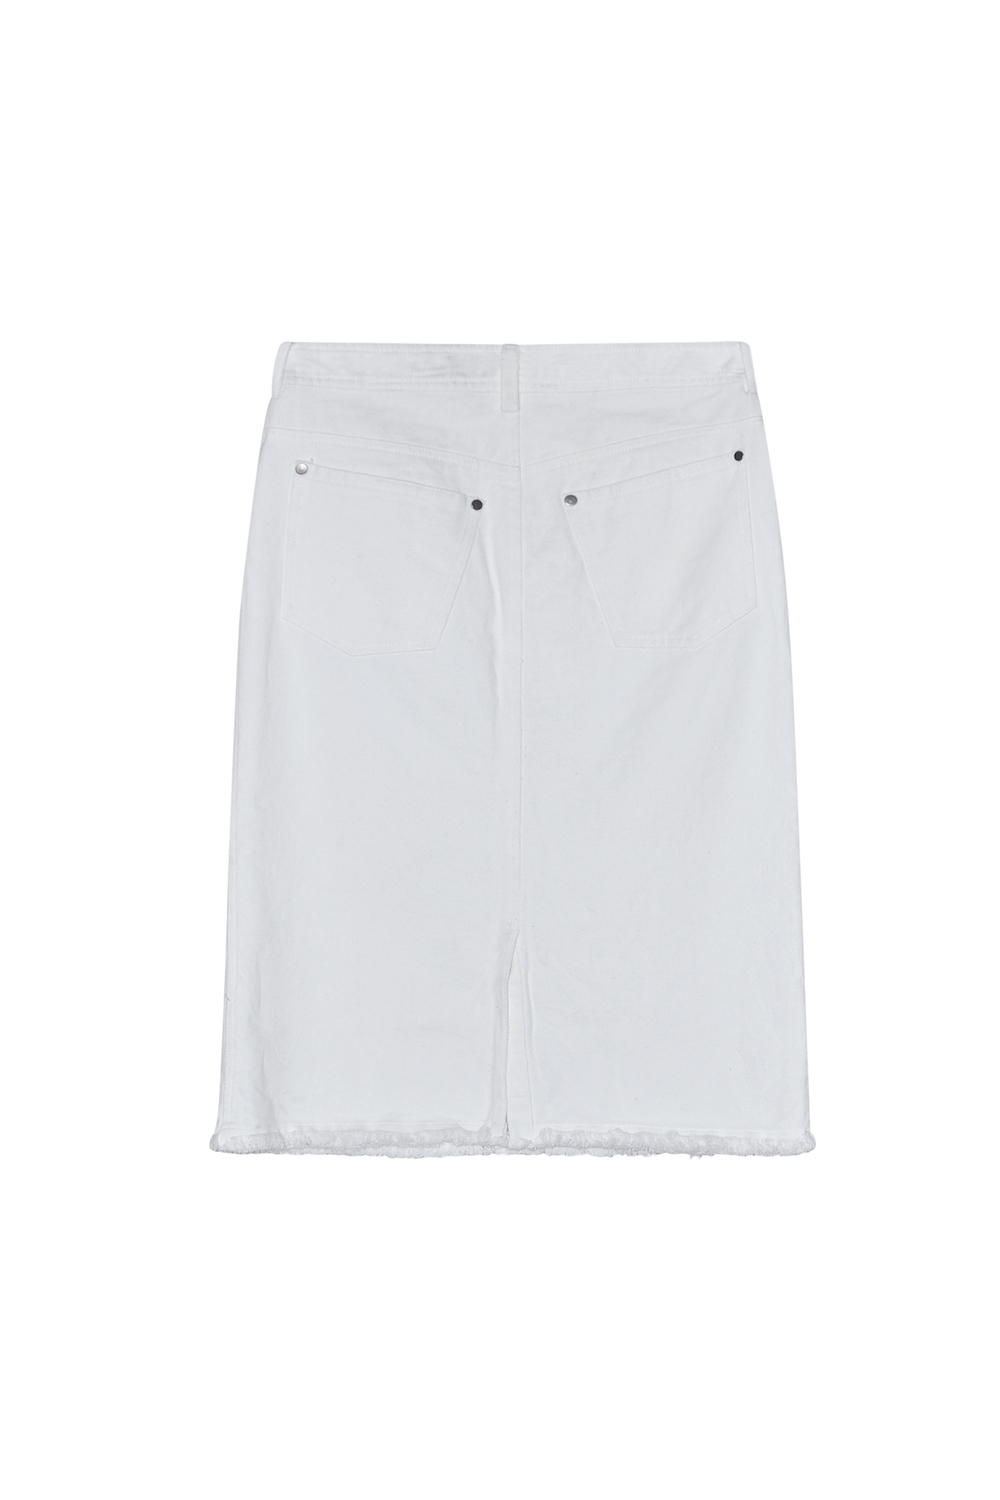 Ross denim skirt organic